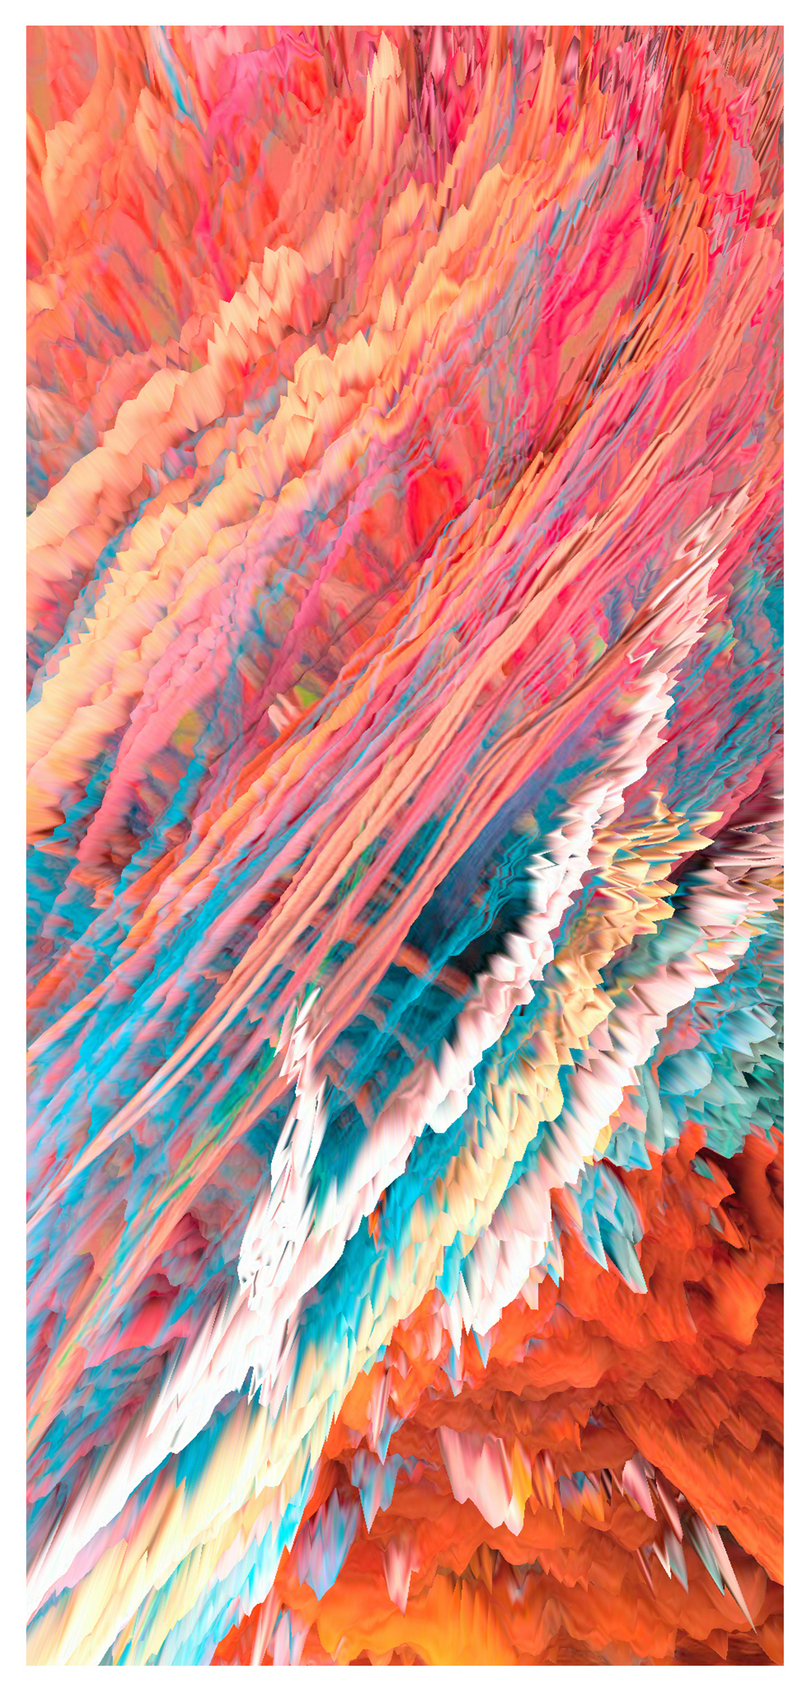 Abstract Color Mobile Phone Wallpaper Backgrounds Images